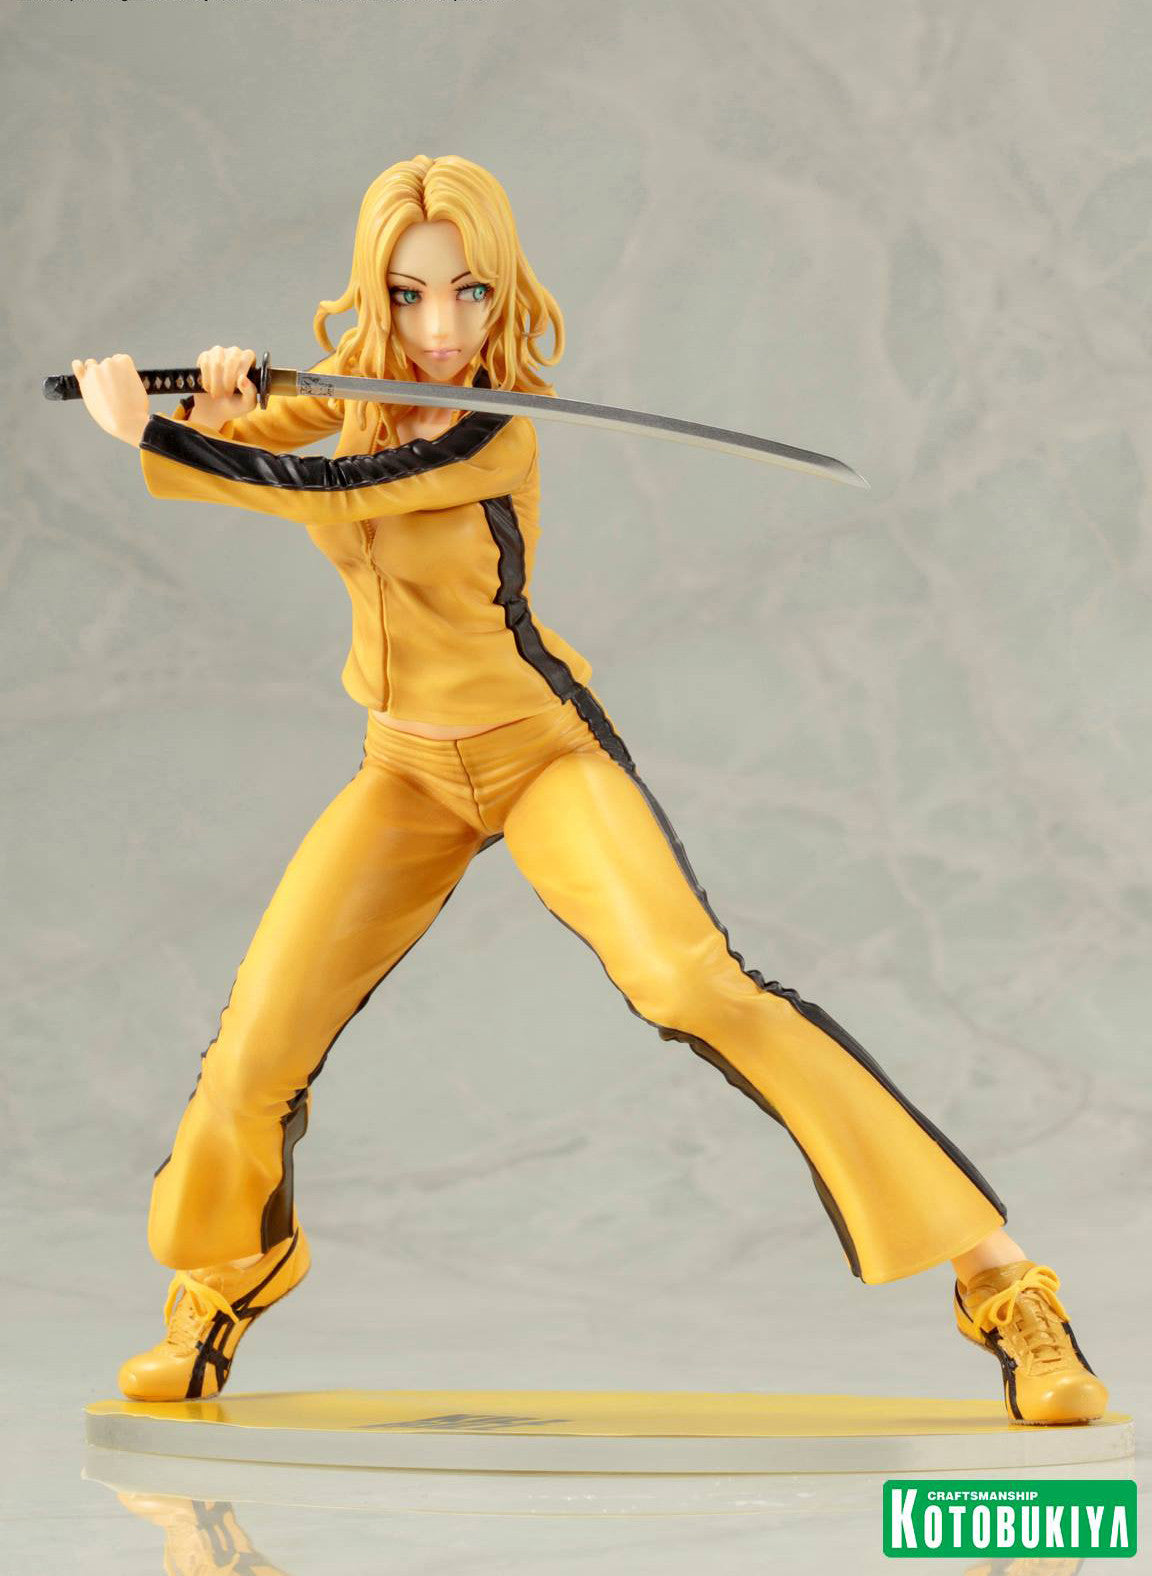 Kotobukiya - Bishoujo - Kill Bill - The Bride (1/7 scale) - Marvelous Toys - 2